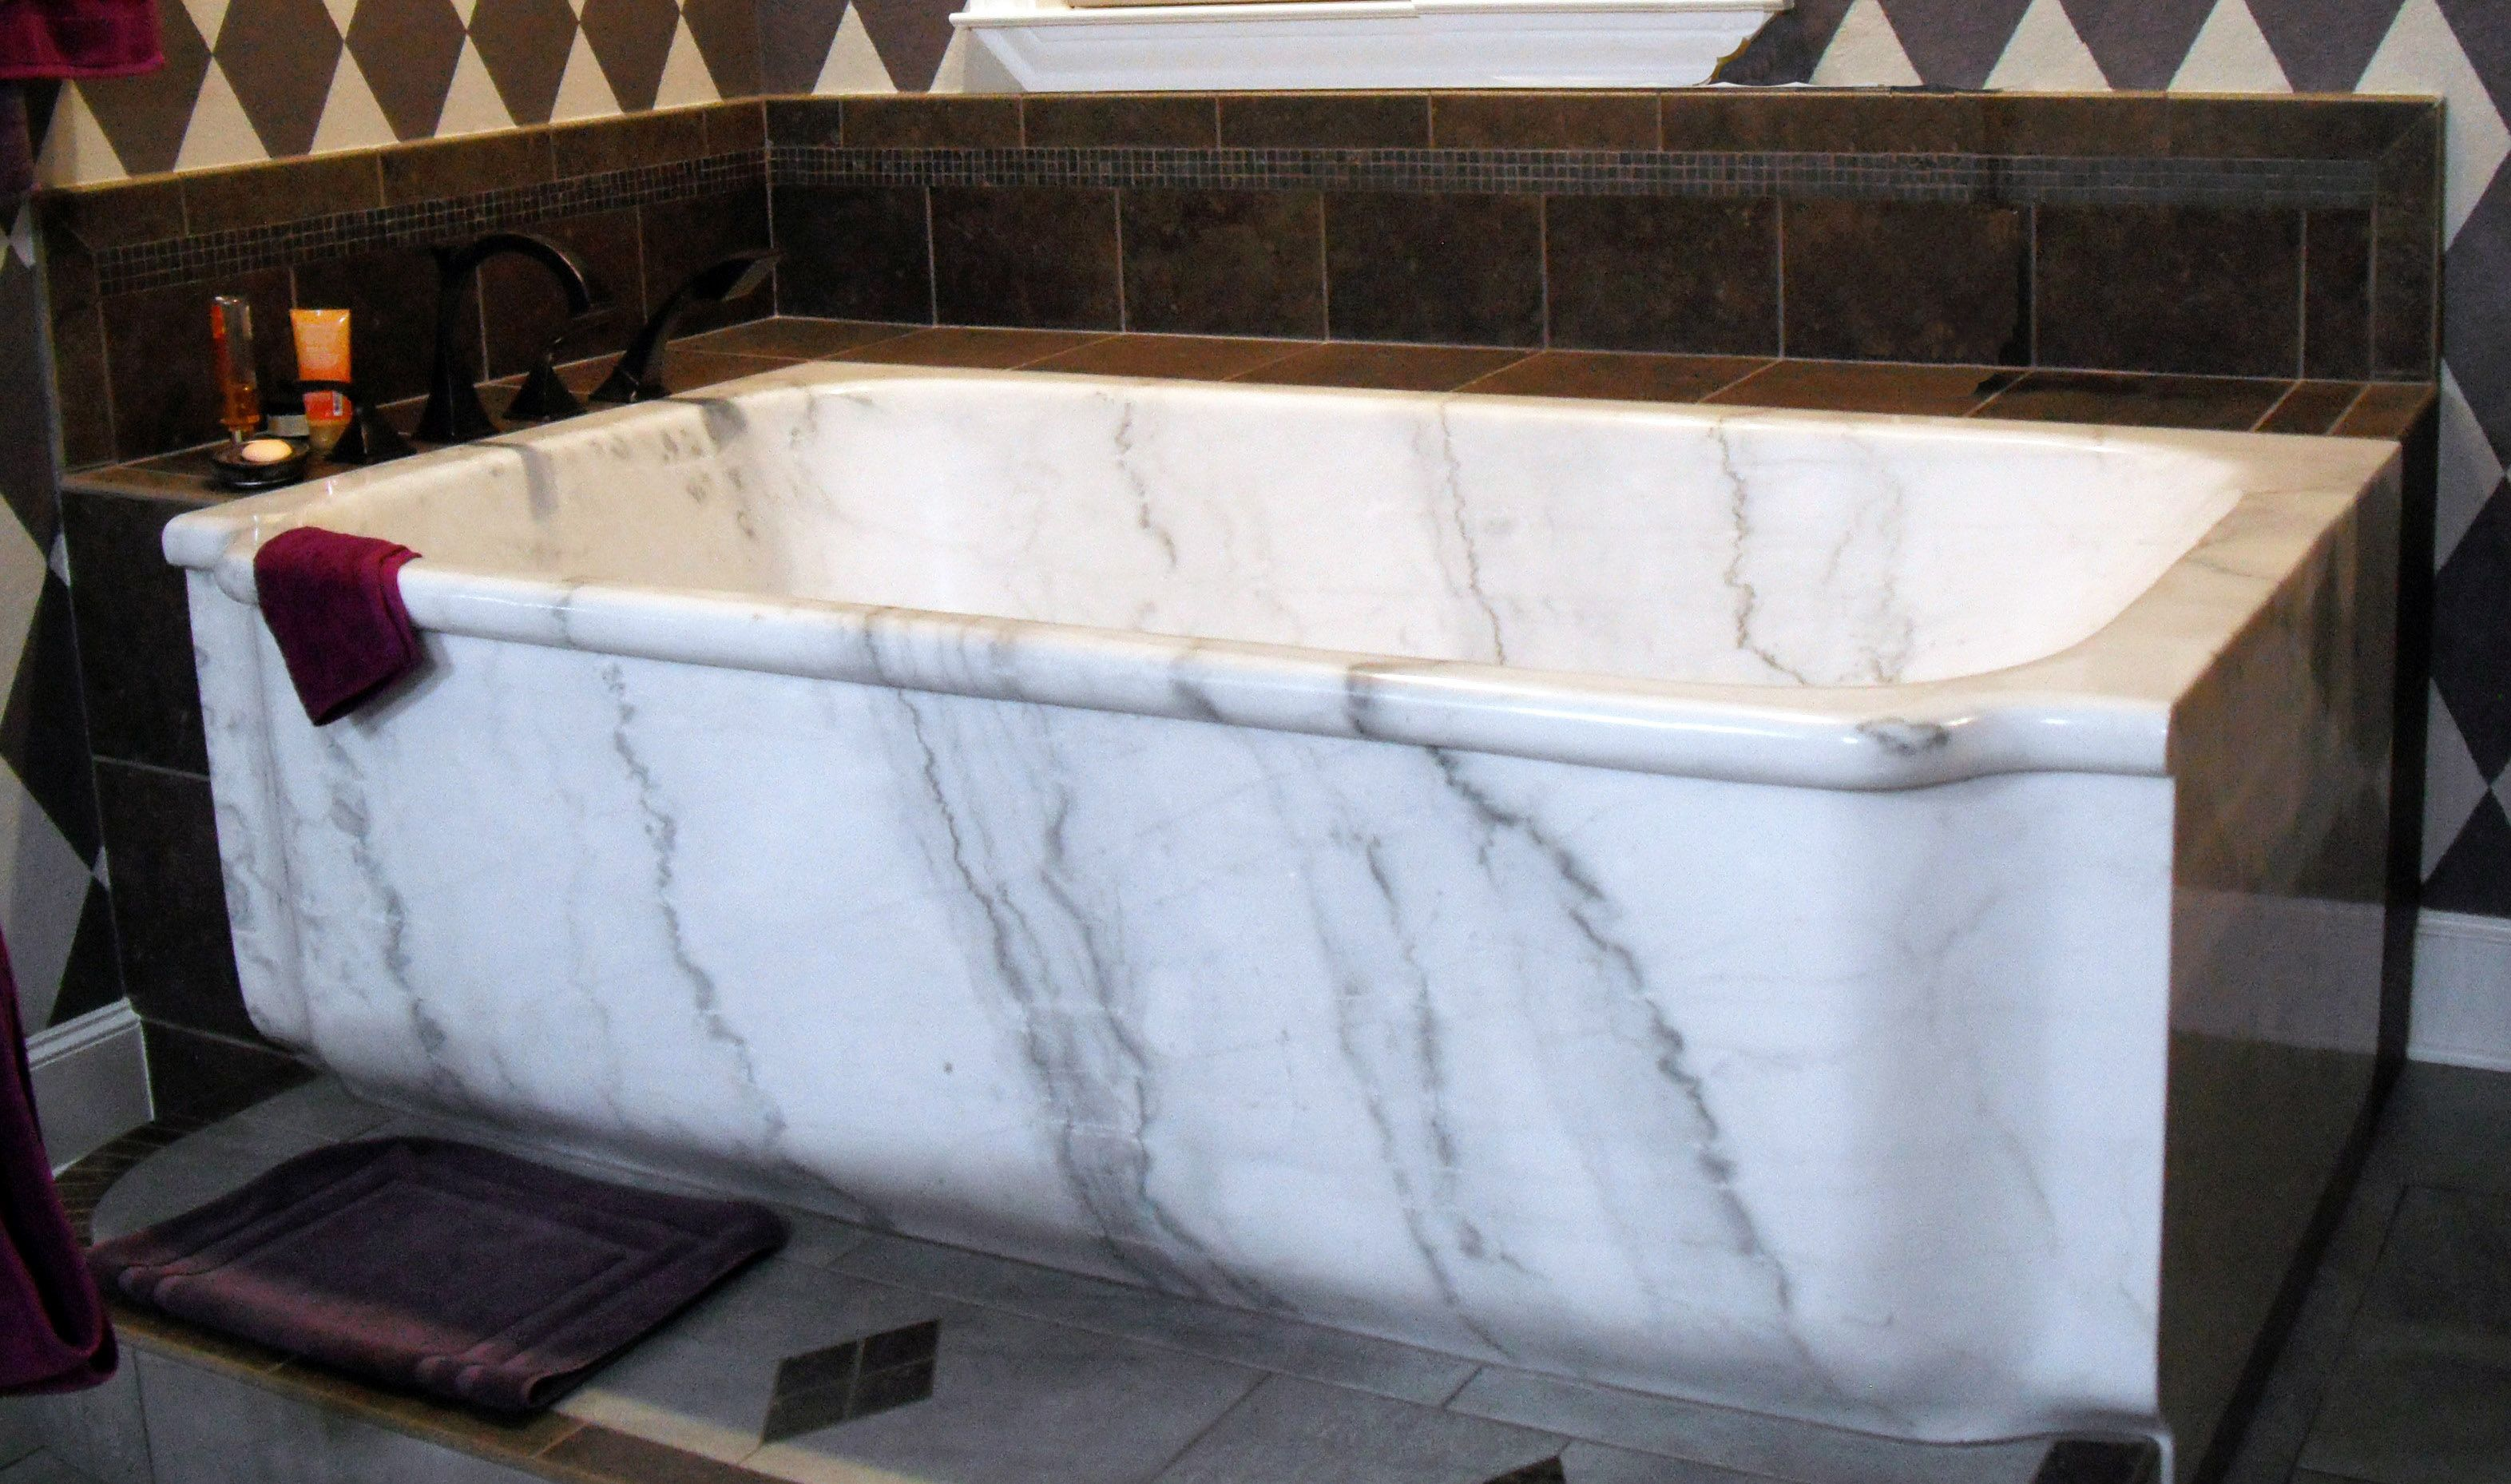 Large Custom Marble Bathtub. Carved From Italian Carrara Marble. White With  Grey Veining.